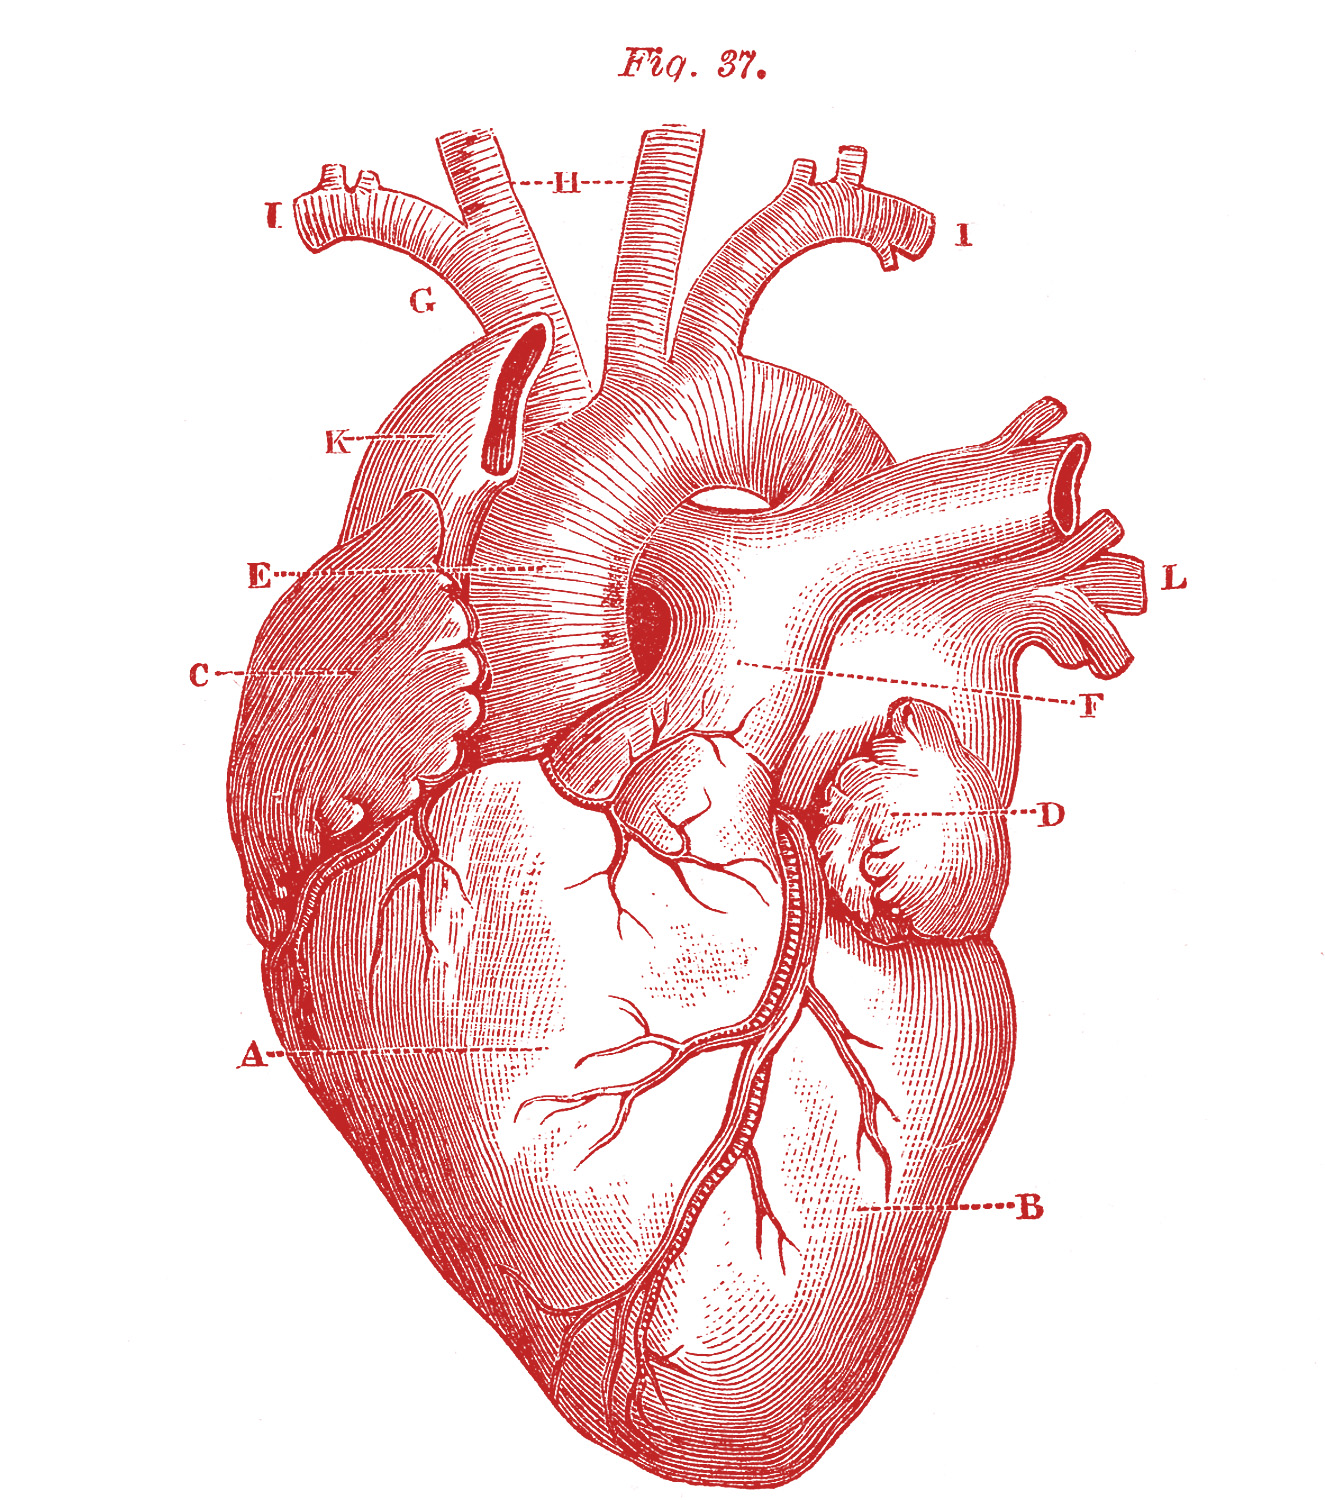 HD Broken Heart Tattoo Design In 2017 Real Photo Pictures Images And Sketches Collections